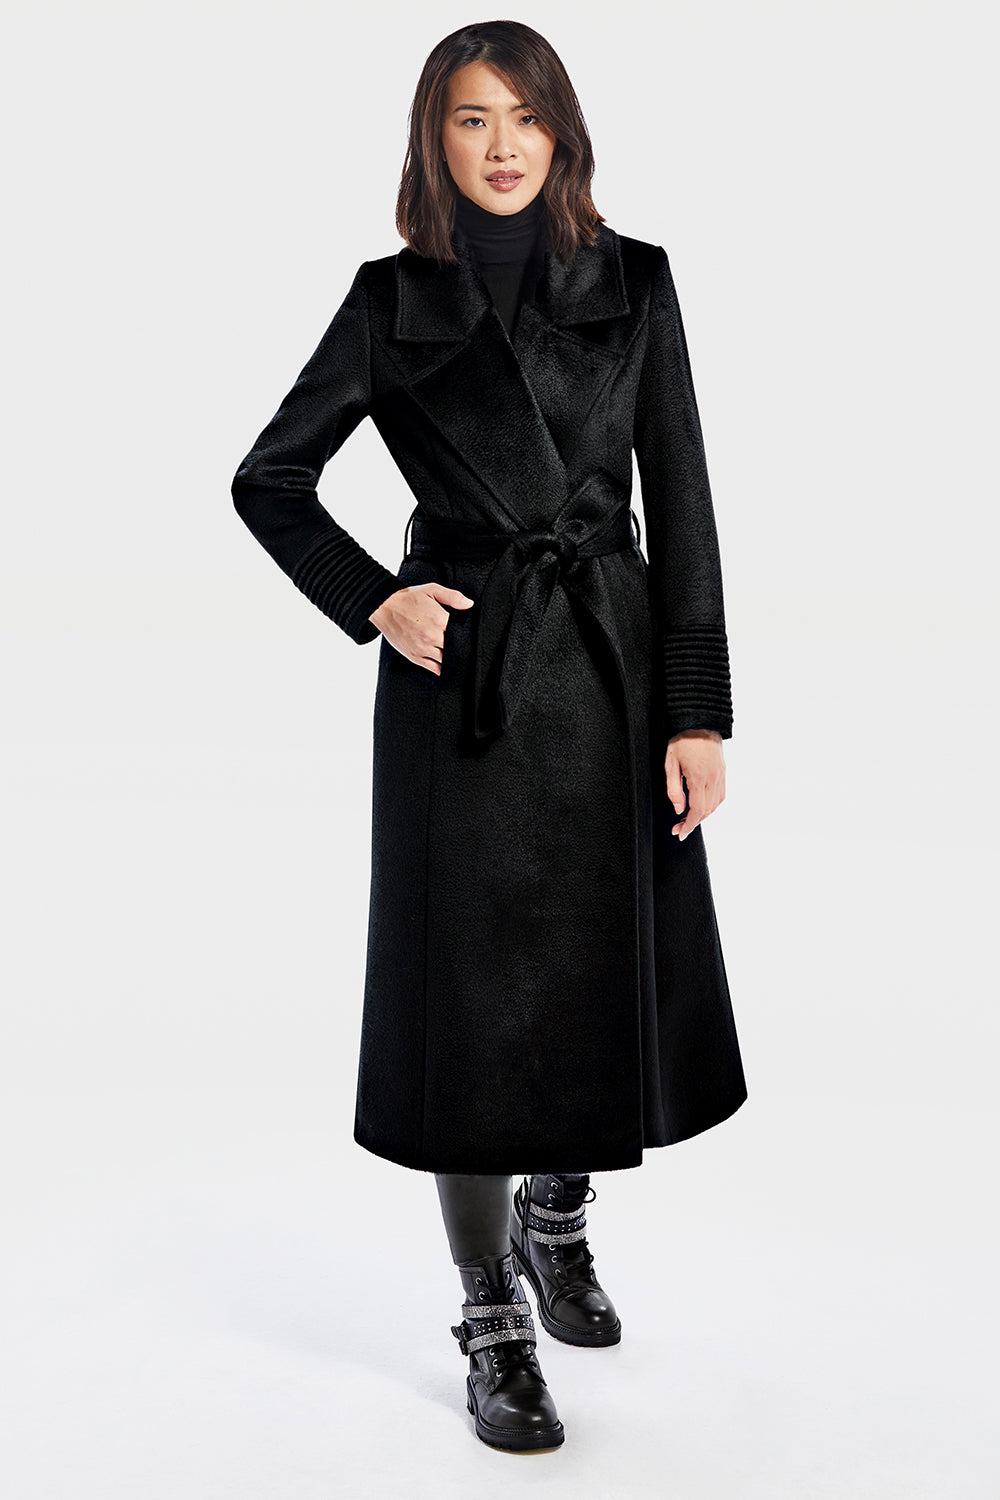 Sentaler Suri Alpaca Long Notched Collar Wrap Coat featured in Suri Alpaca and available in Black. Seen from front.